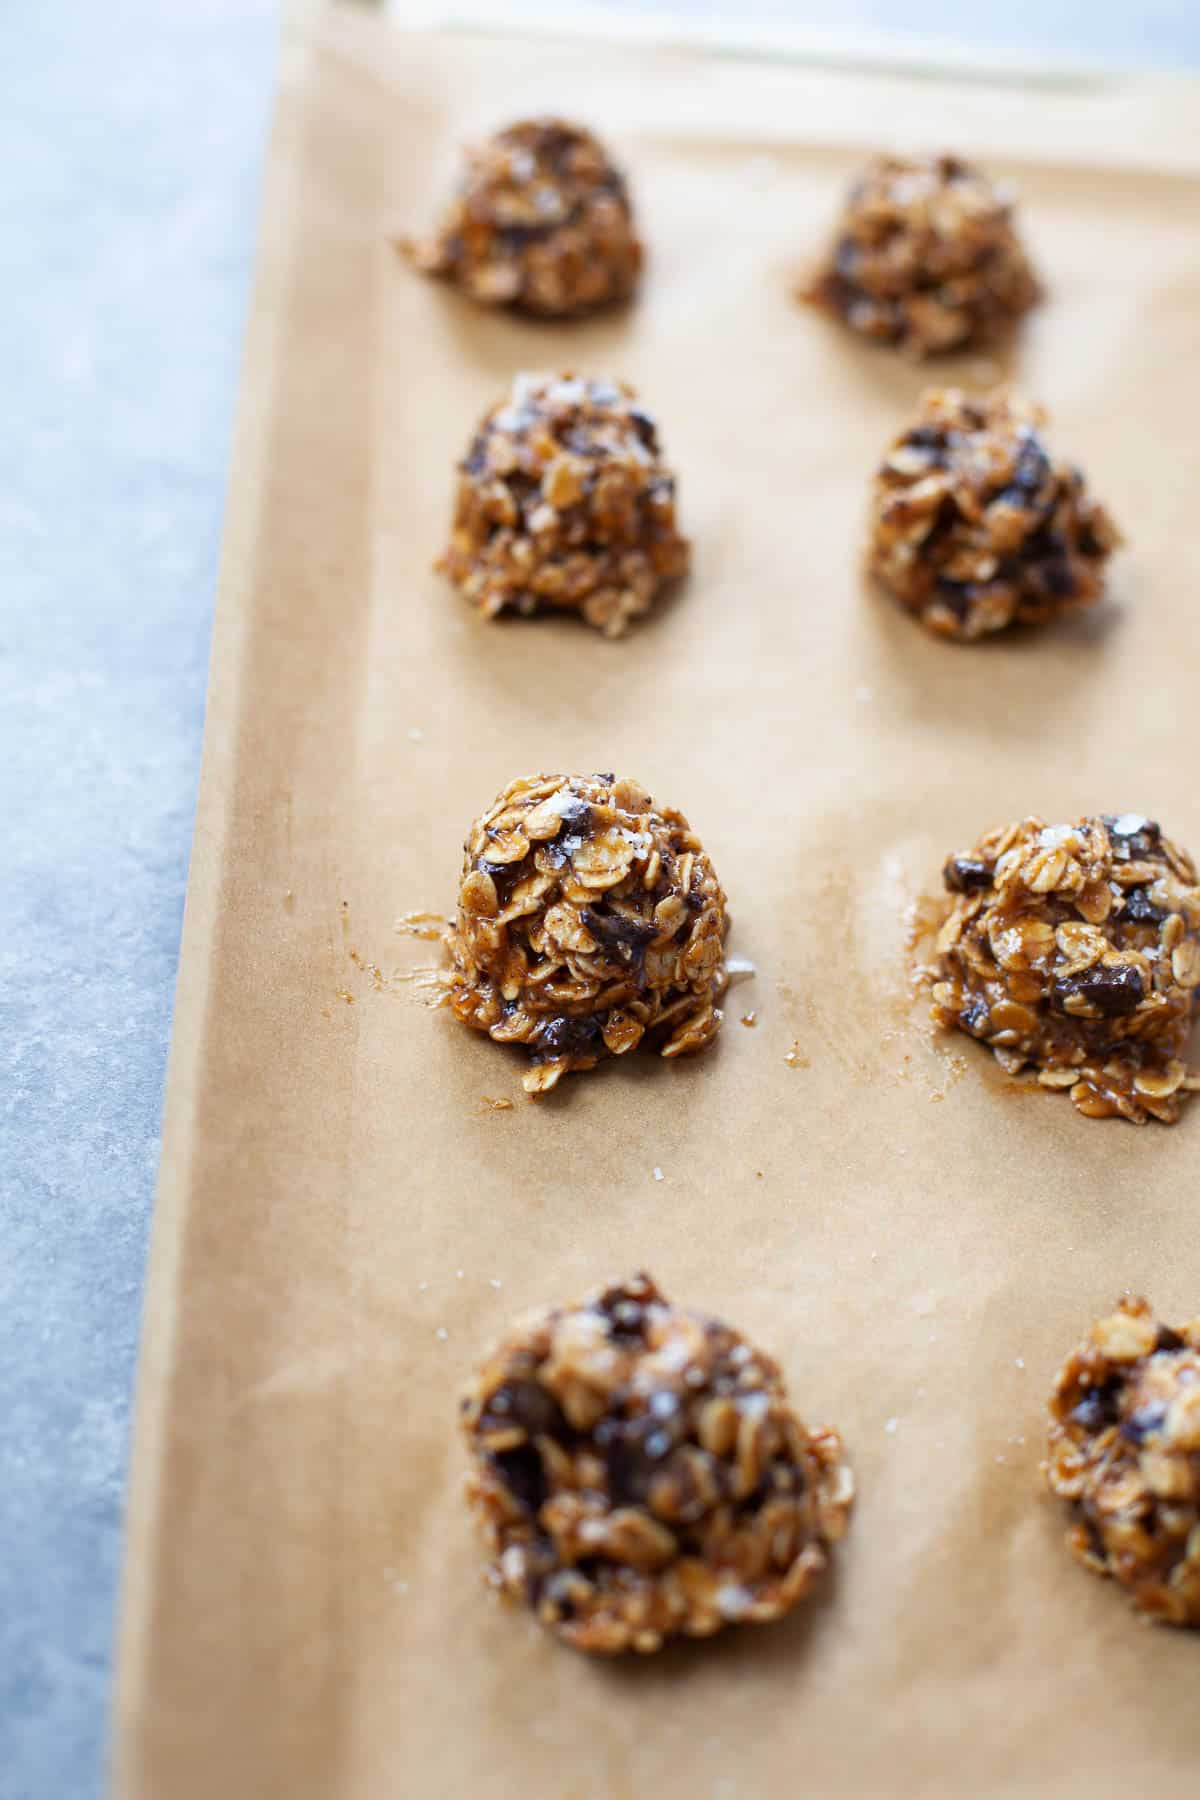 close up shot of cookie dough rolled into balls on a parchment lined baking sheet